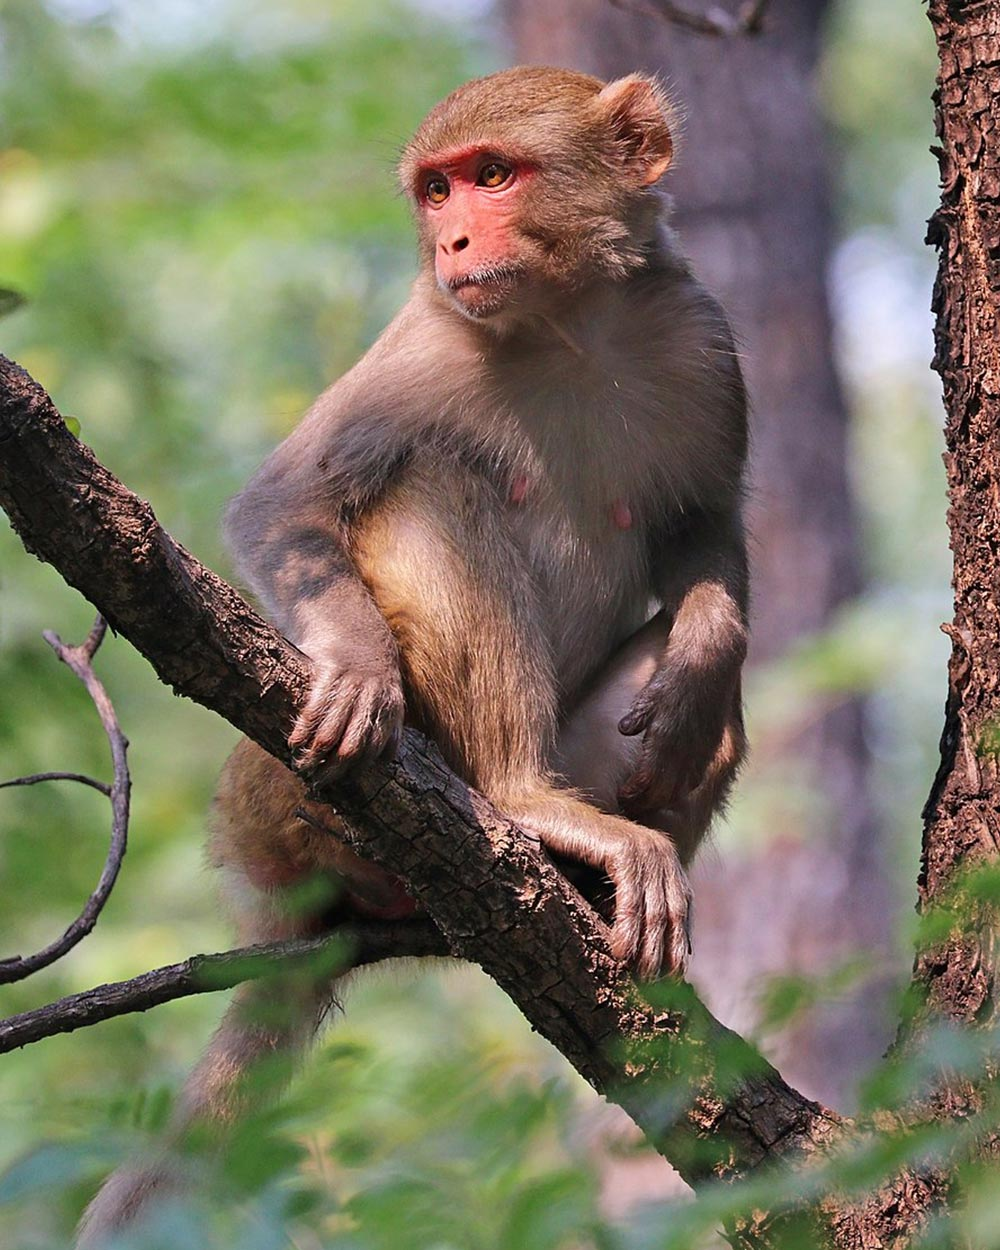 The COVID pandemic has led to a shortage of monkeys available for testing.